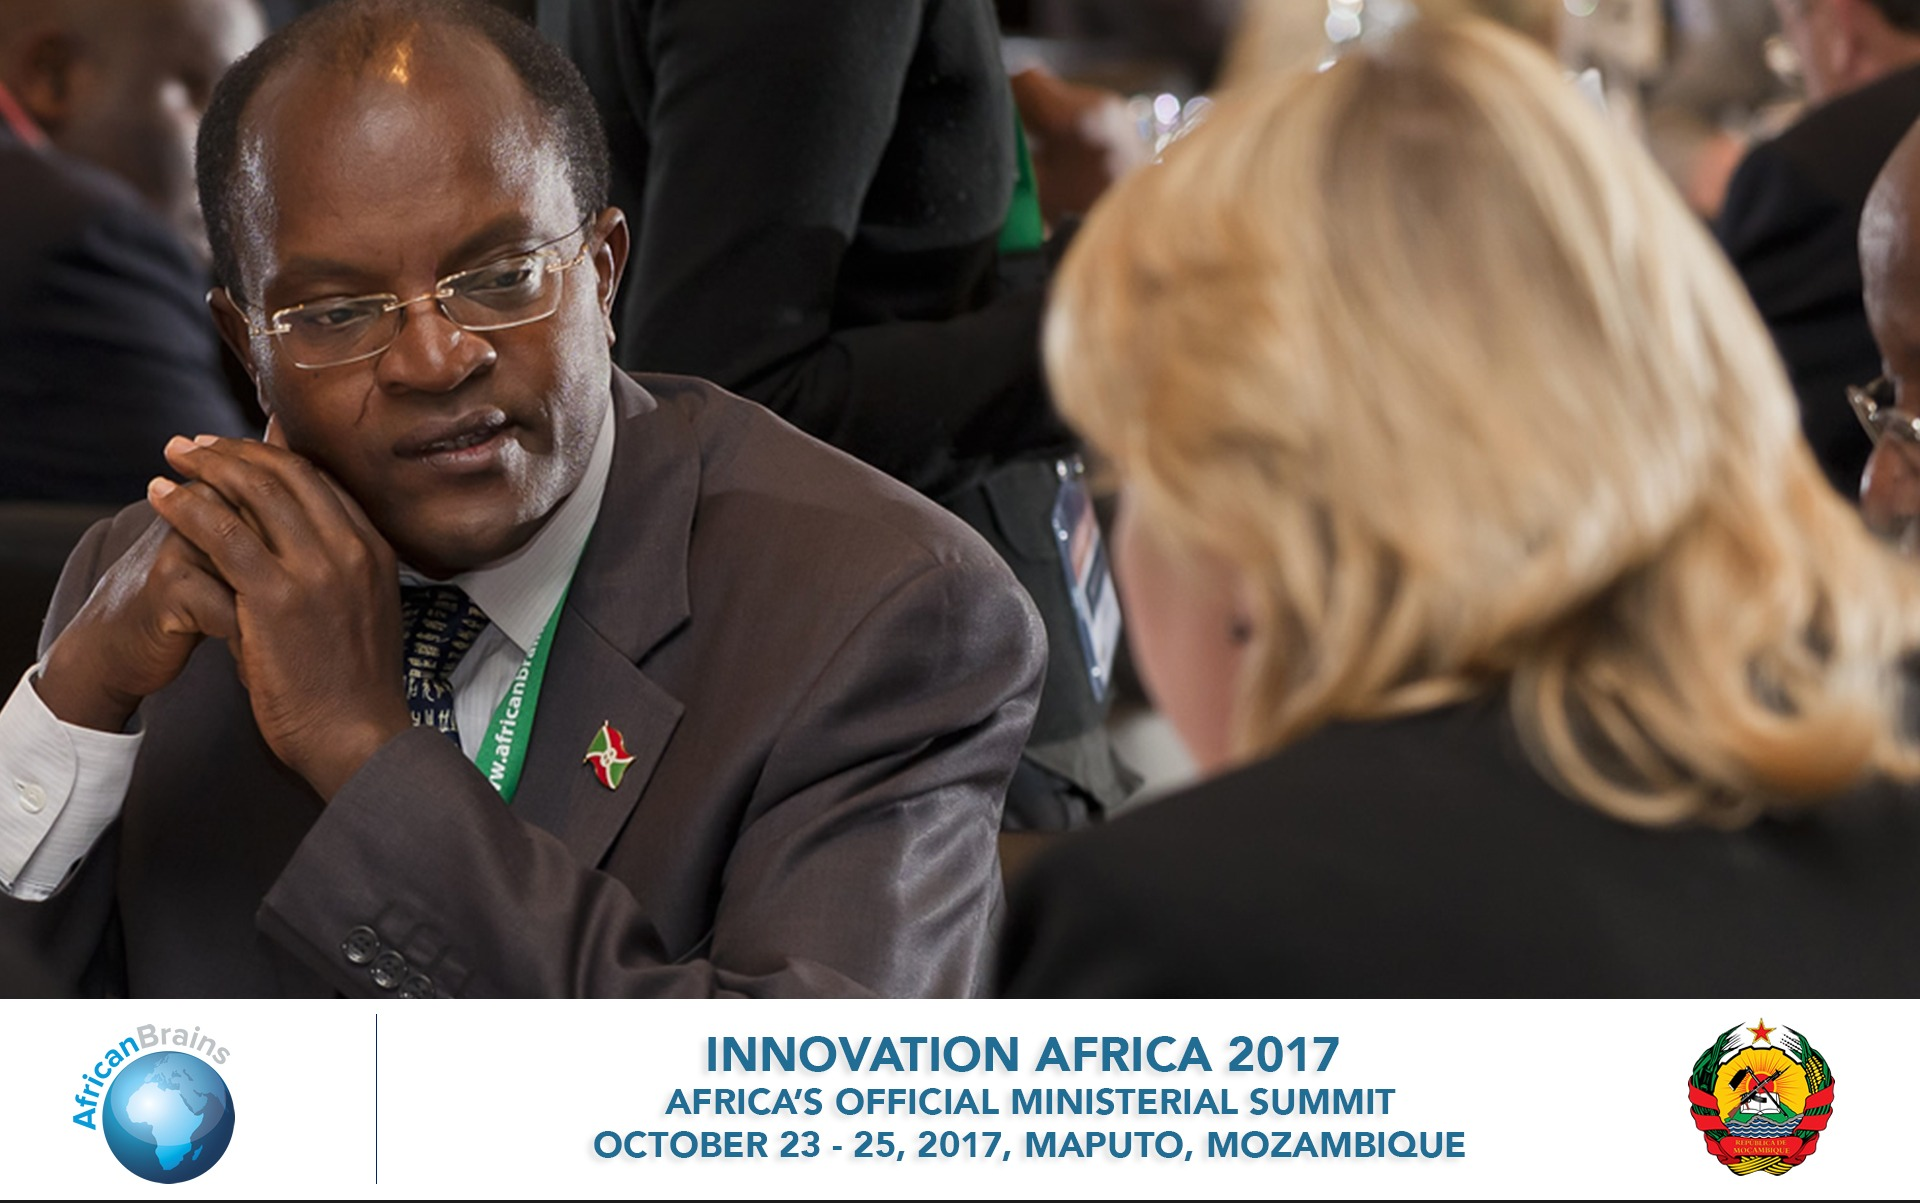 Innovation Africa 2017 - Africa's Official Ministerial Summit